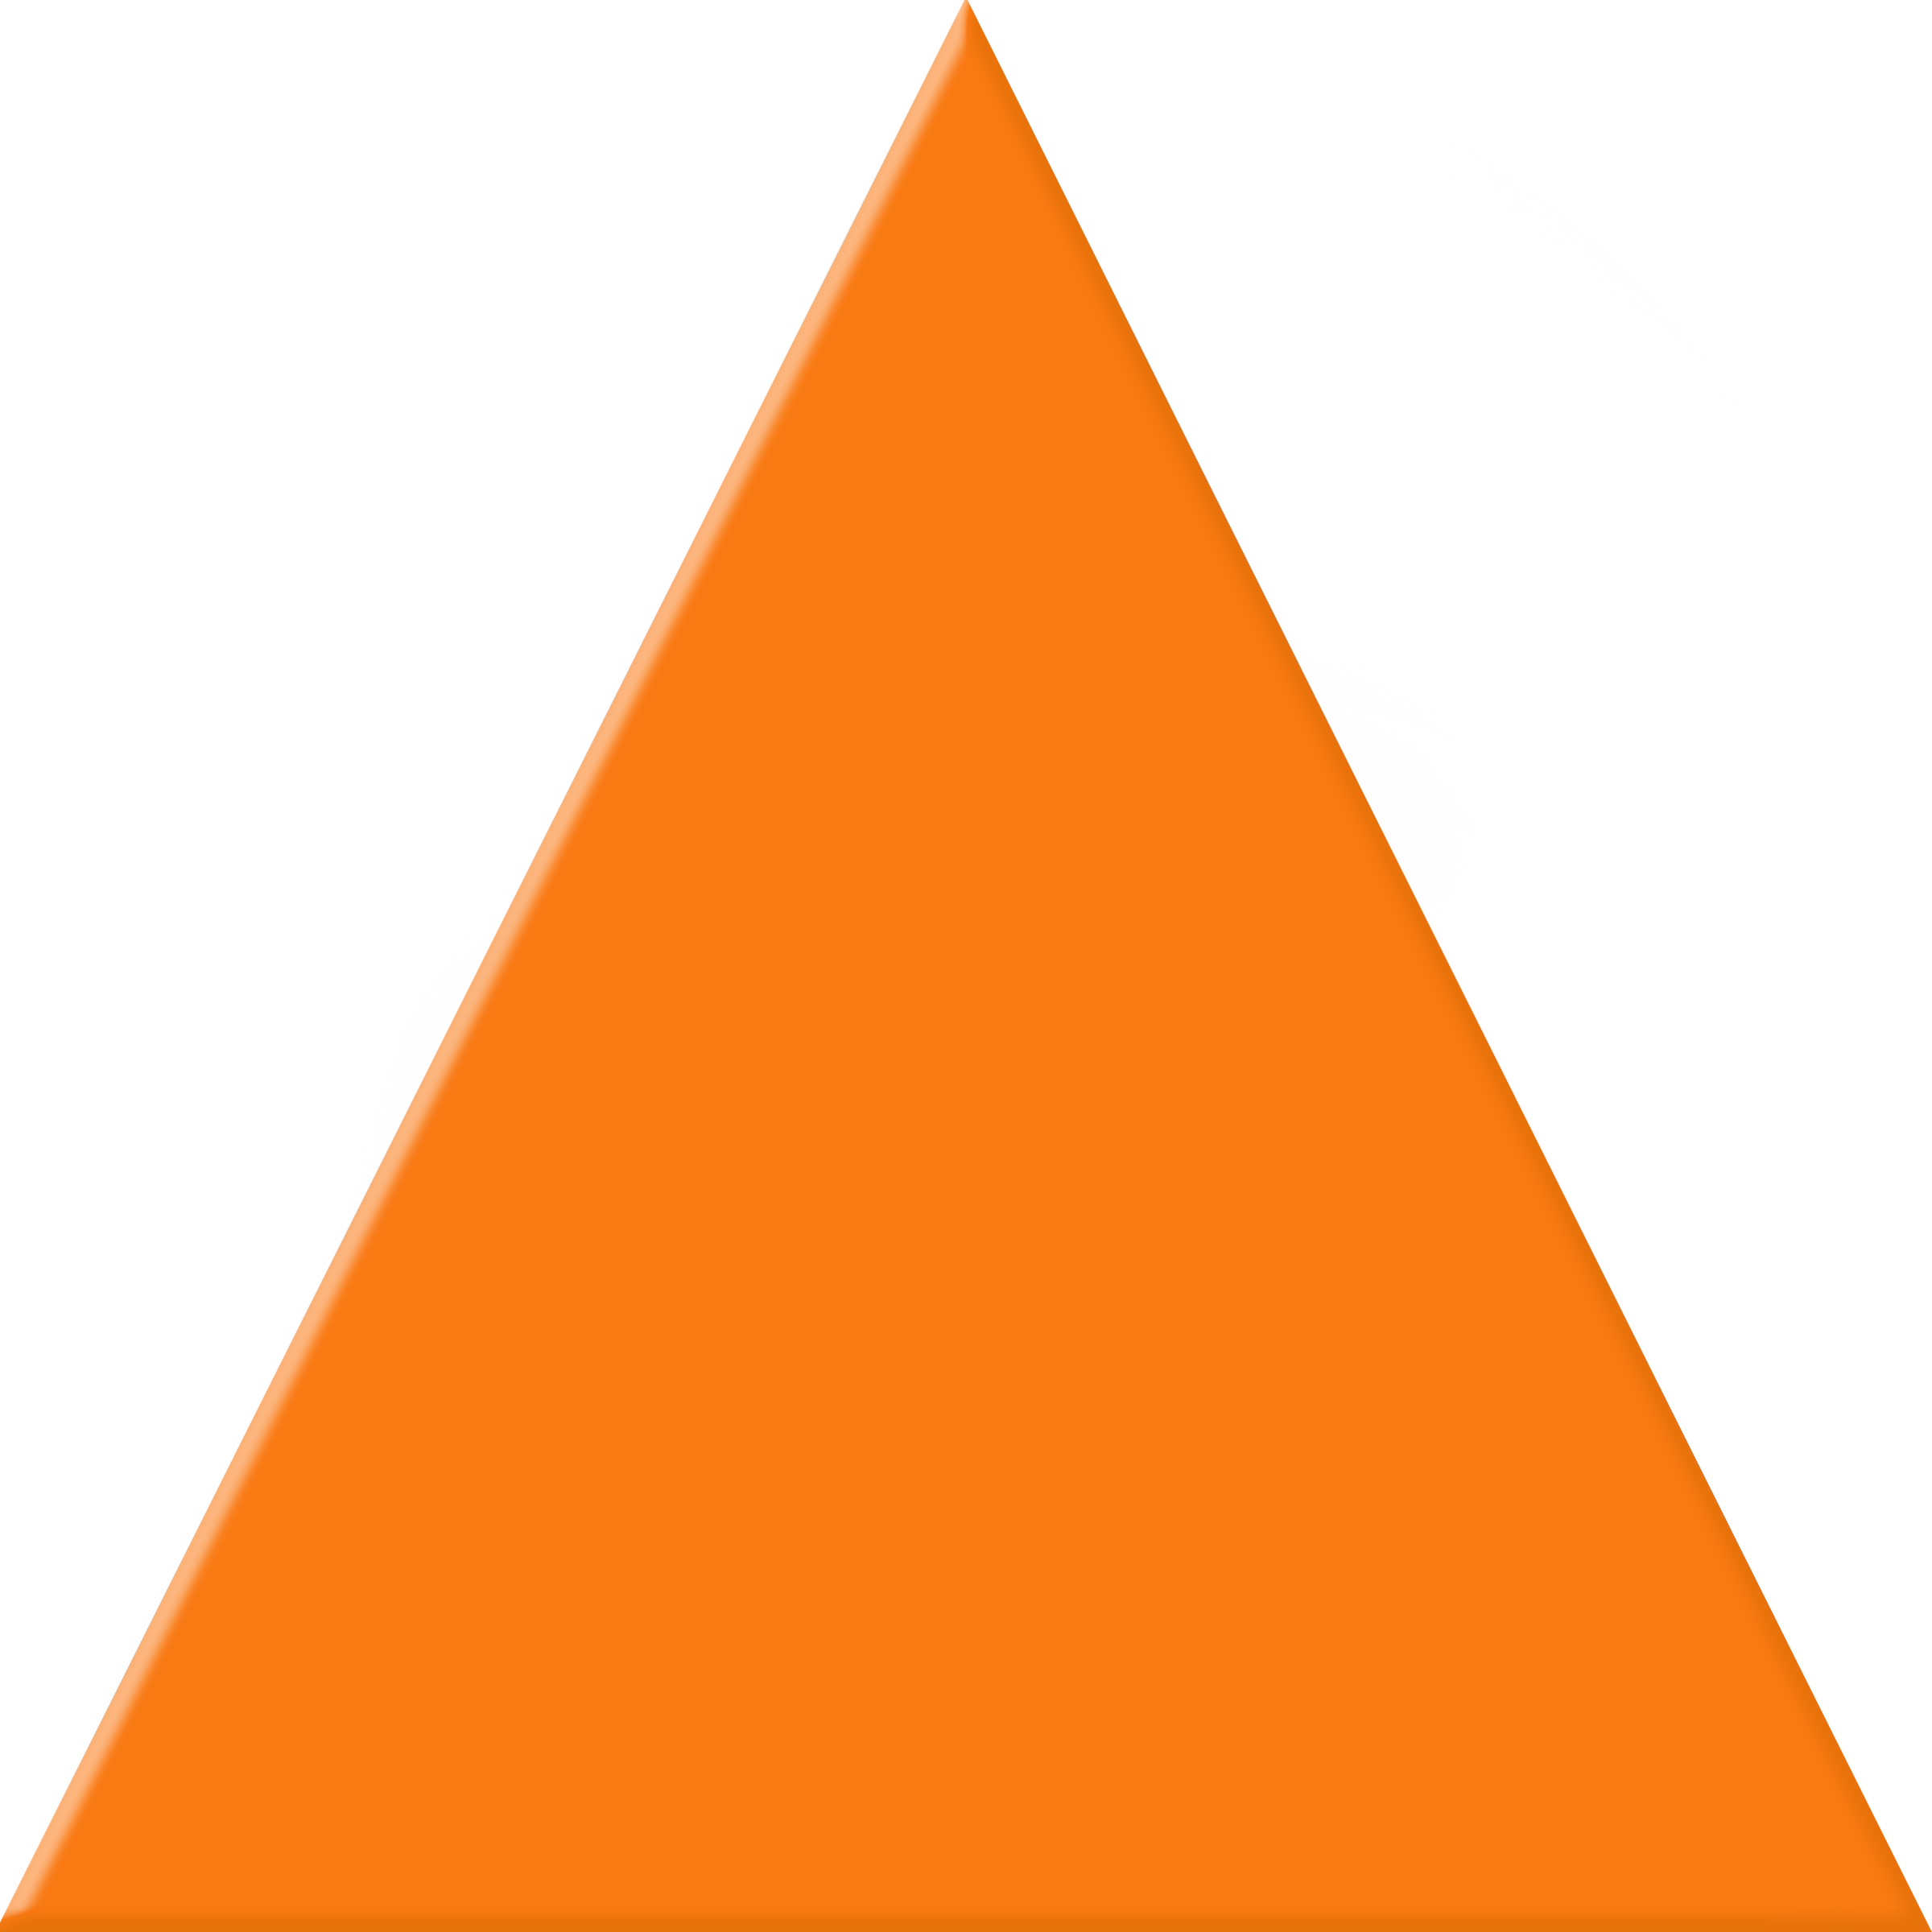 Orange Triangle Free Images At Clker Com Vector Clip Art Online